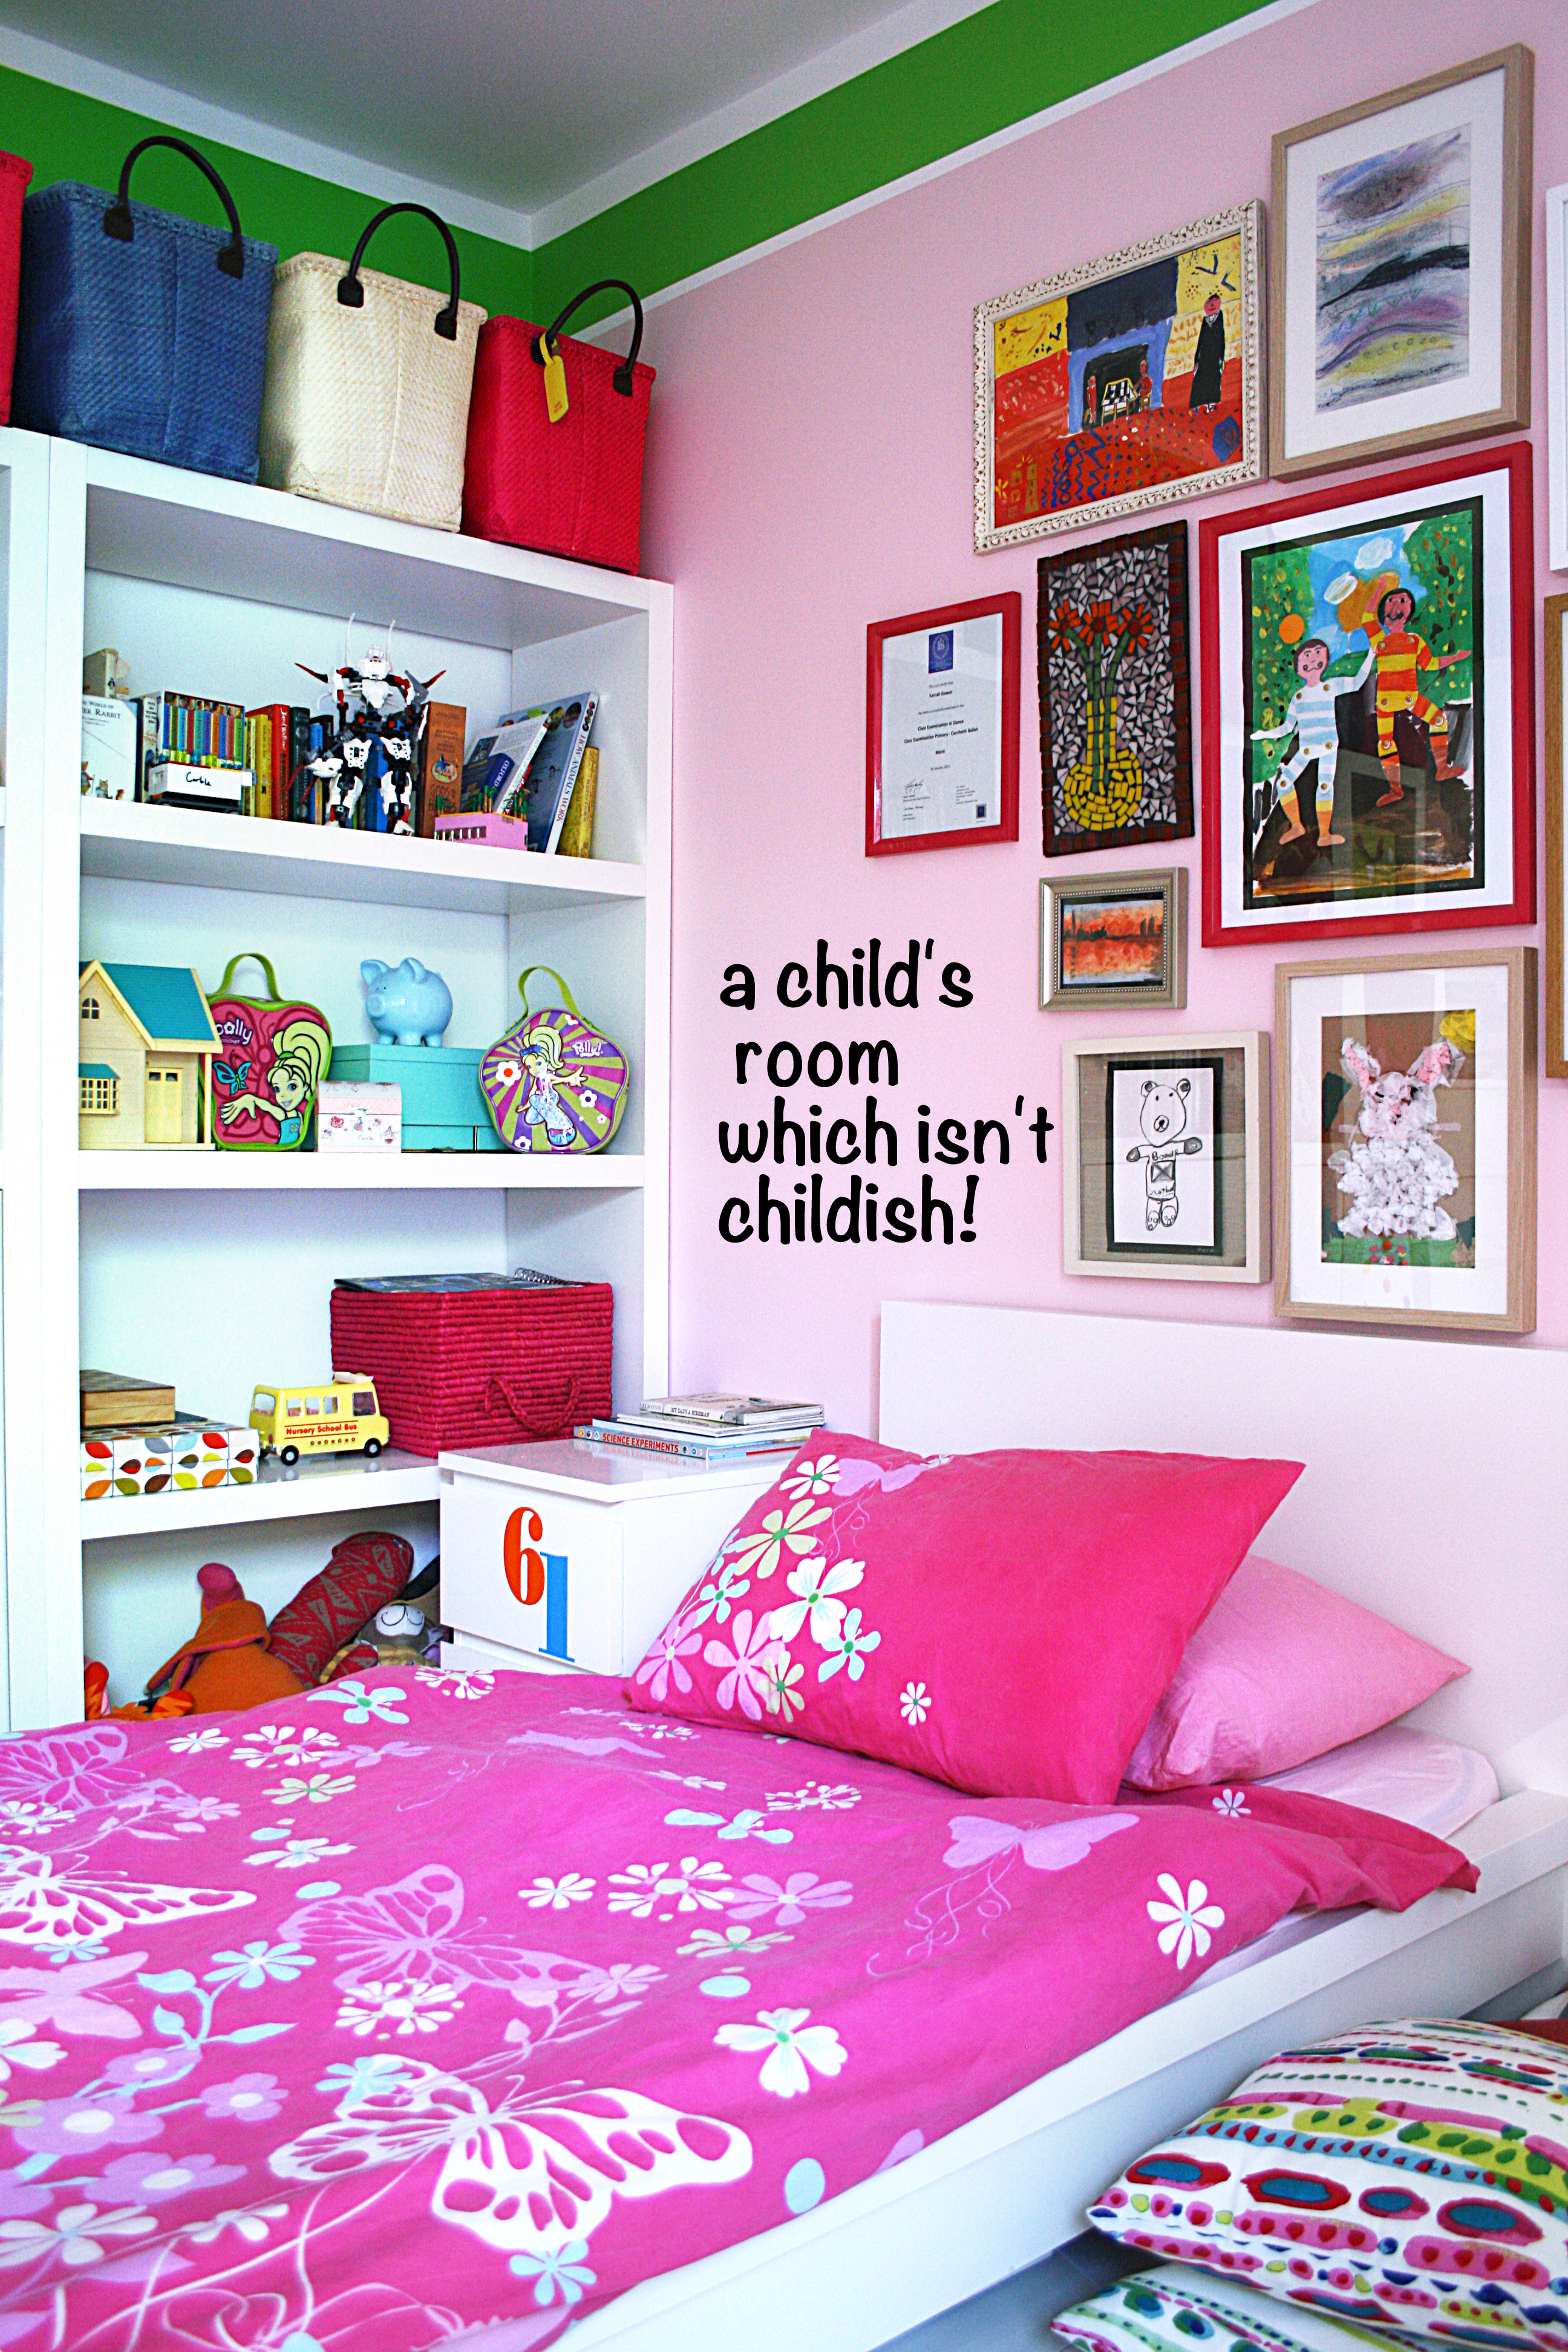 childsroom1